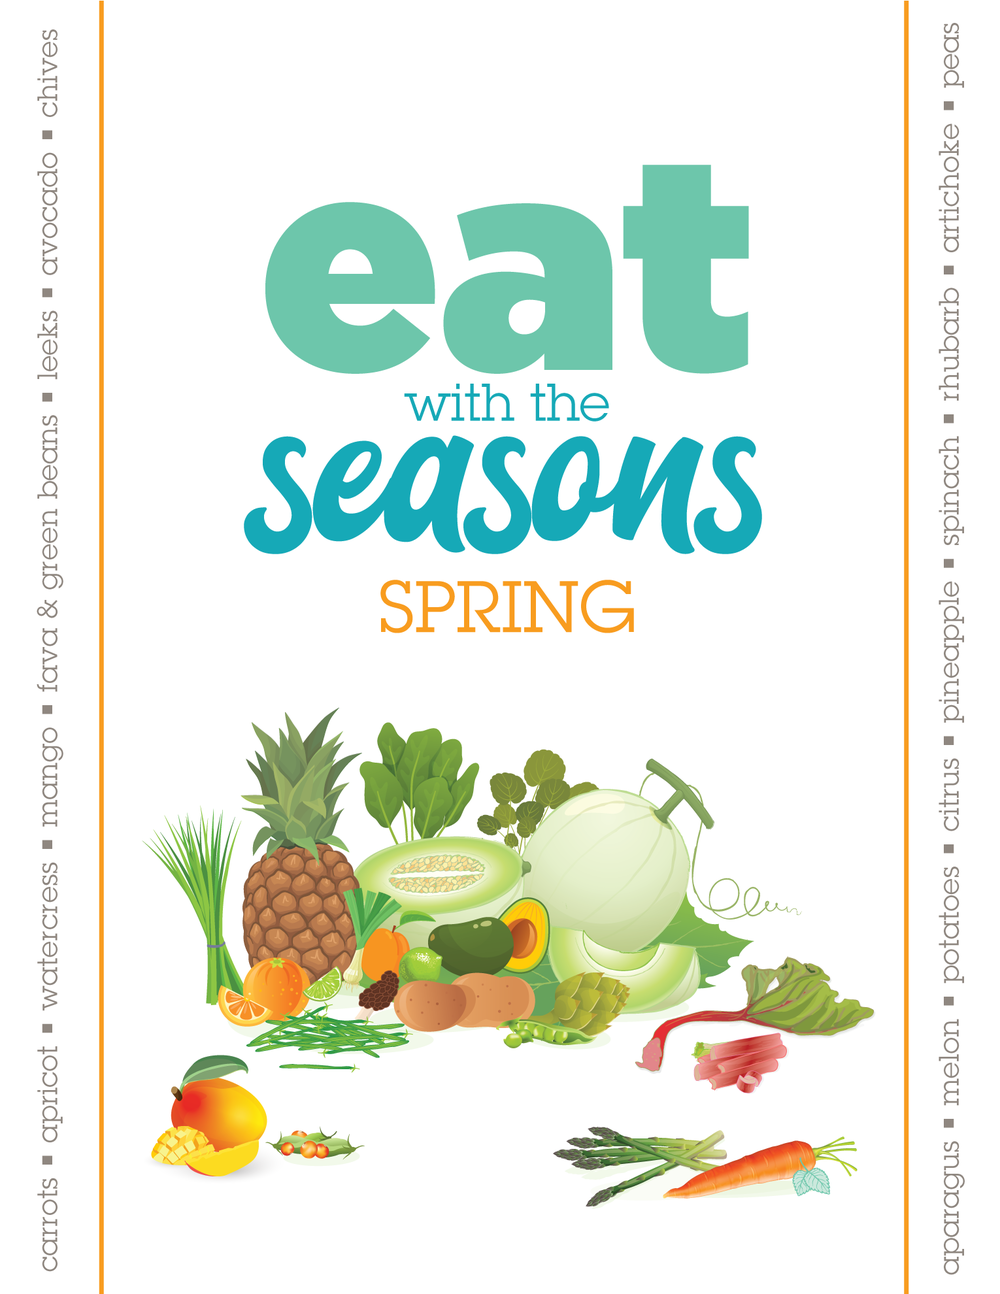 Eat-with-the-Seasons-Spring-vert.png